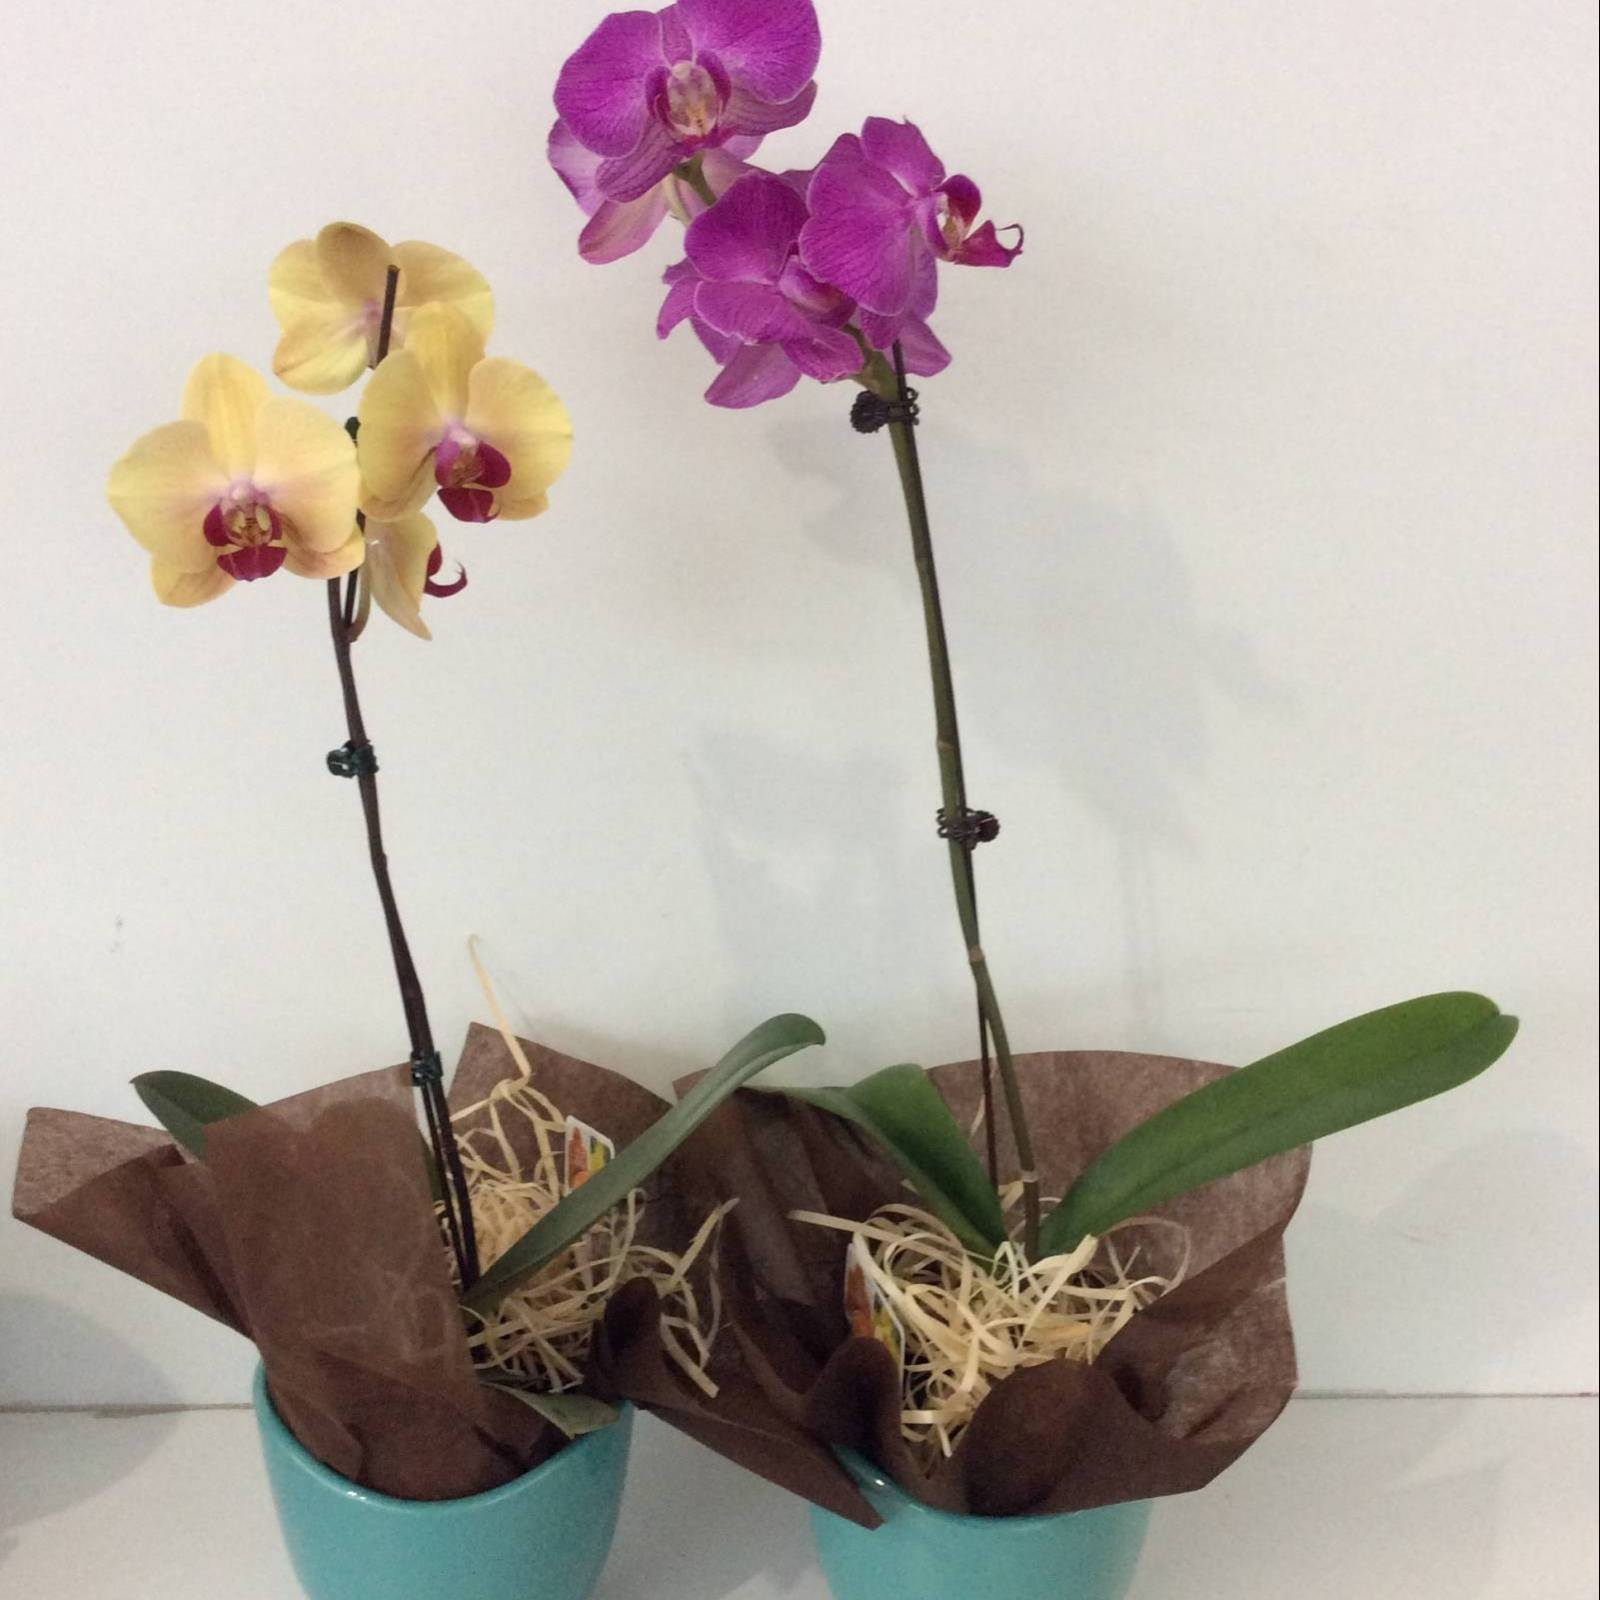 small phalaenopsis orchid plant in a ceramic pot.